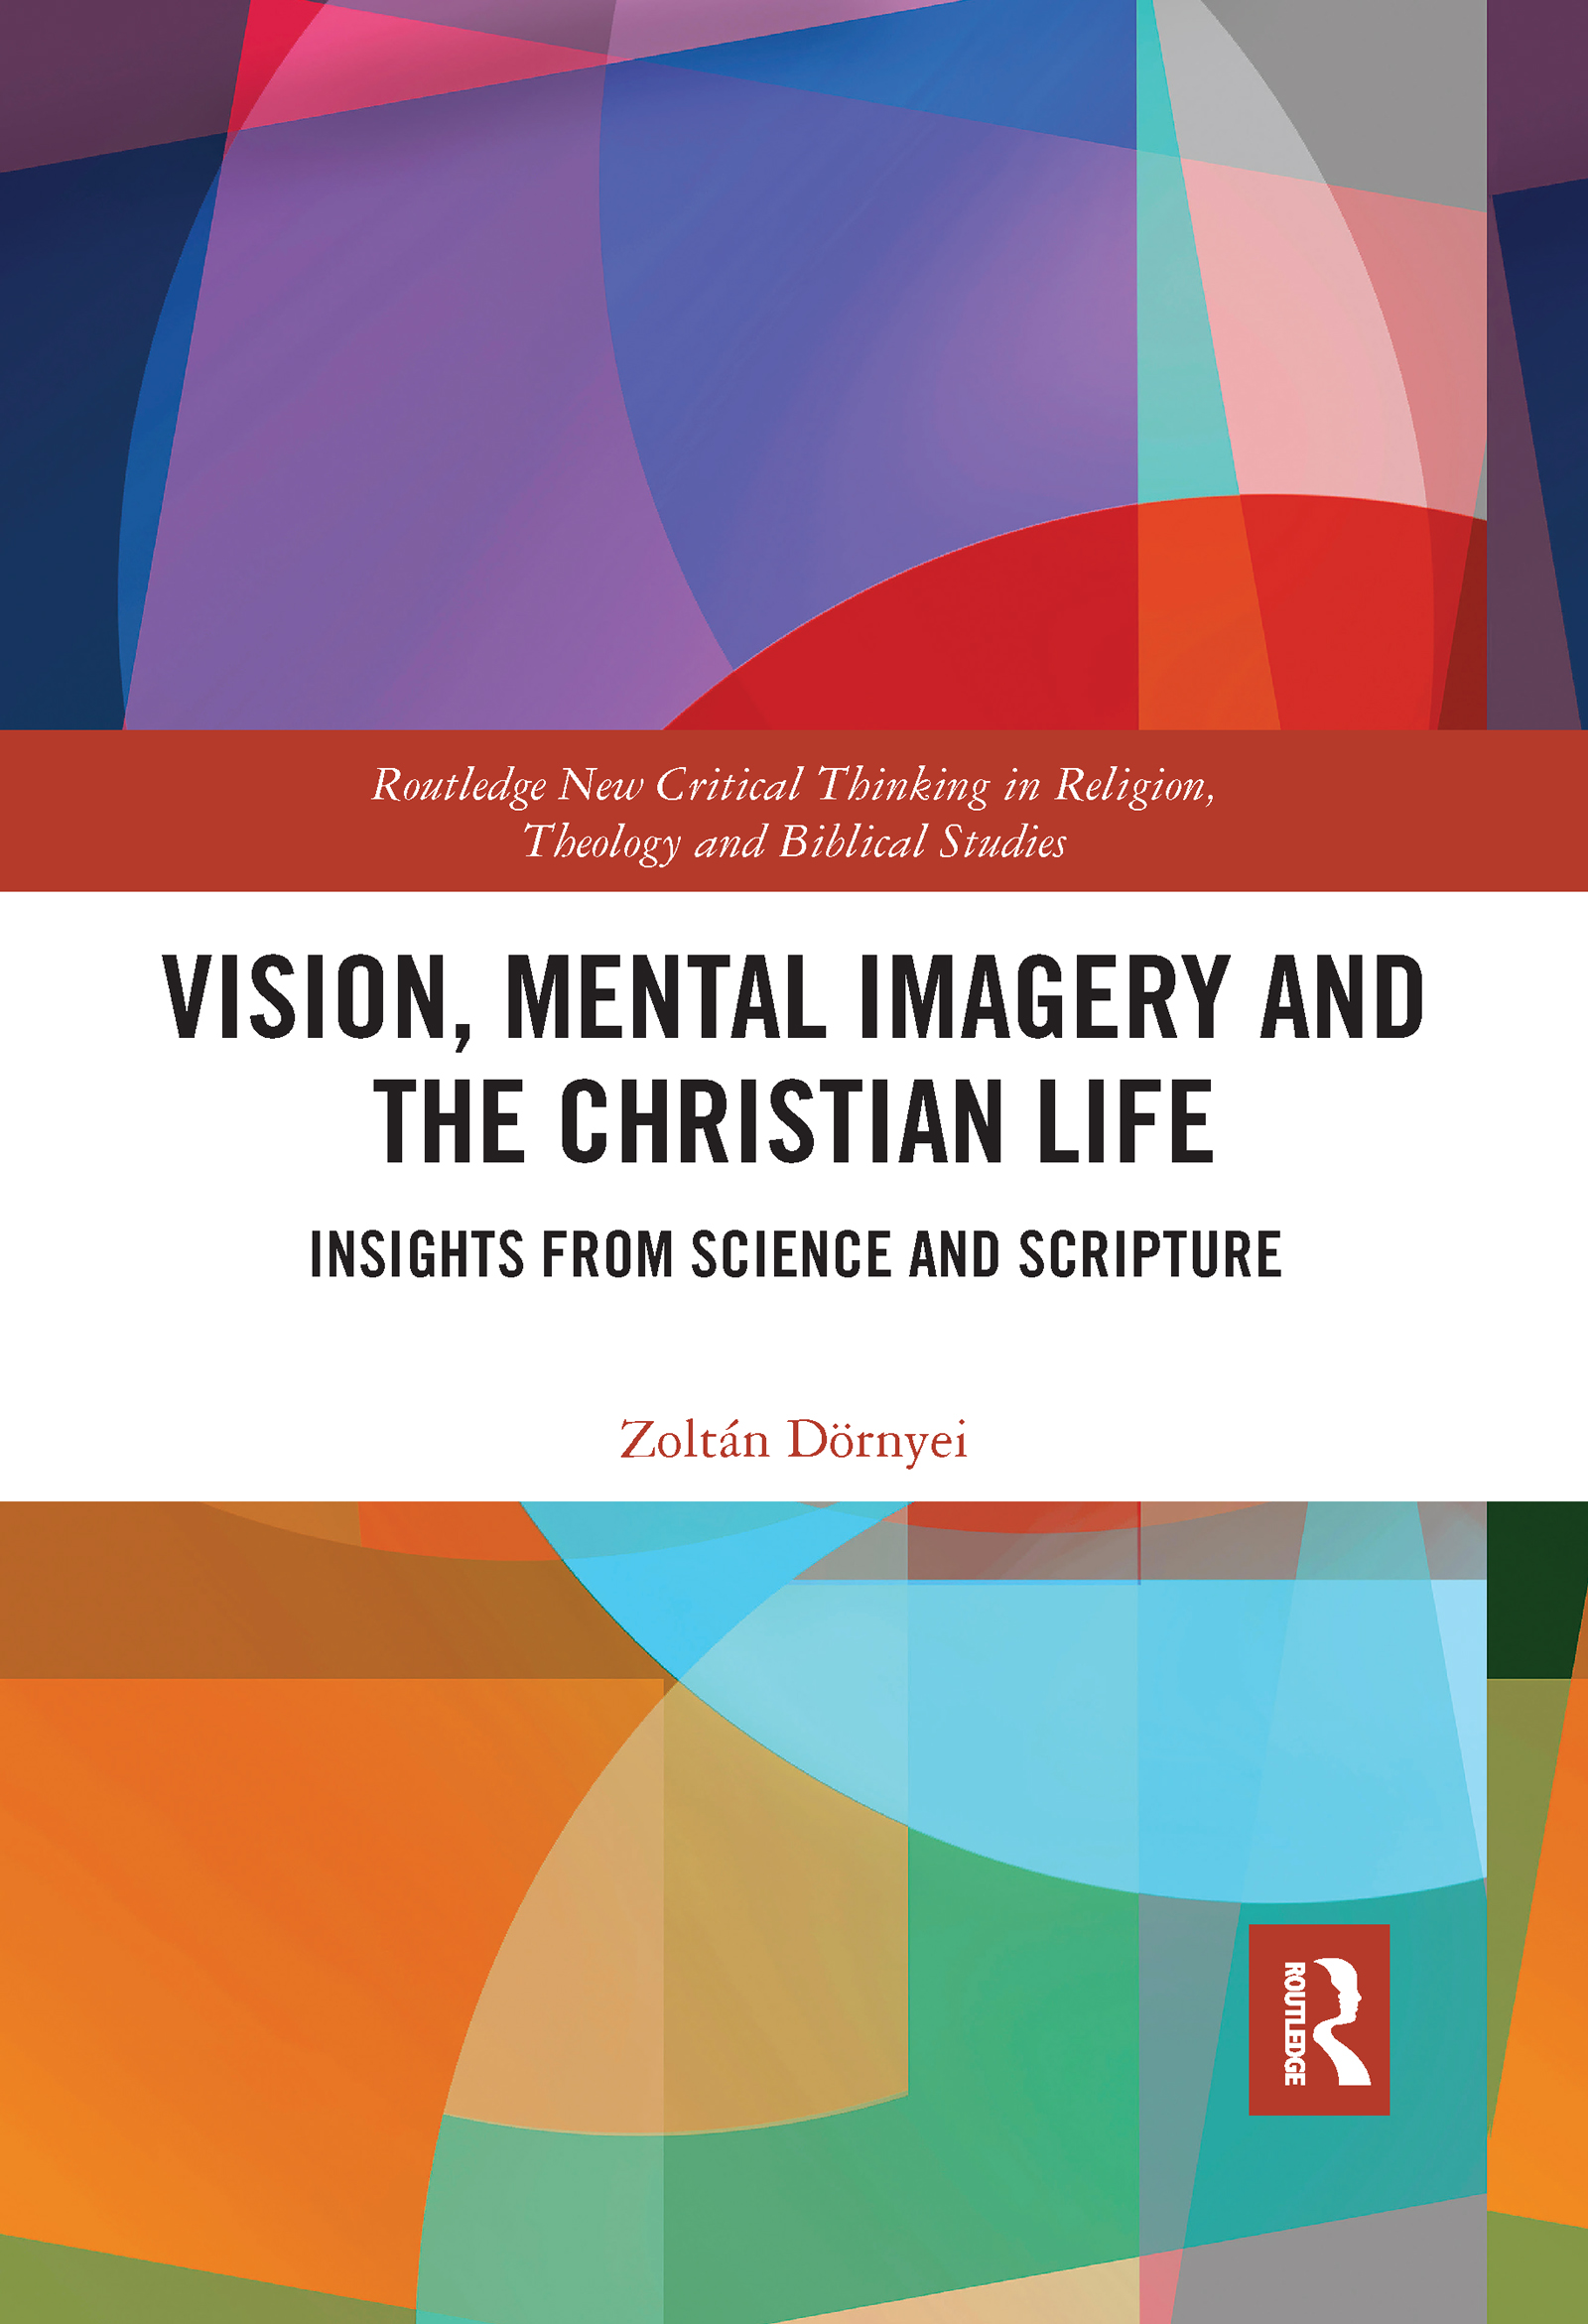 Vision, Mental Imagery and the Christian Life